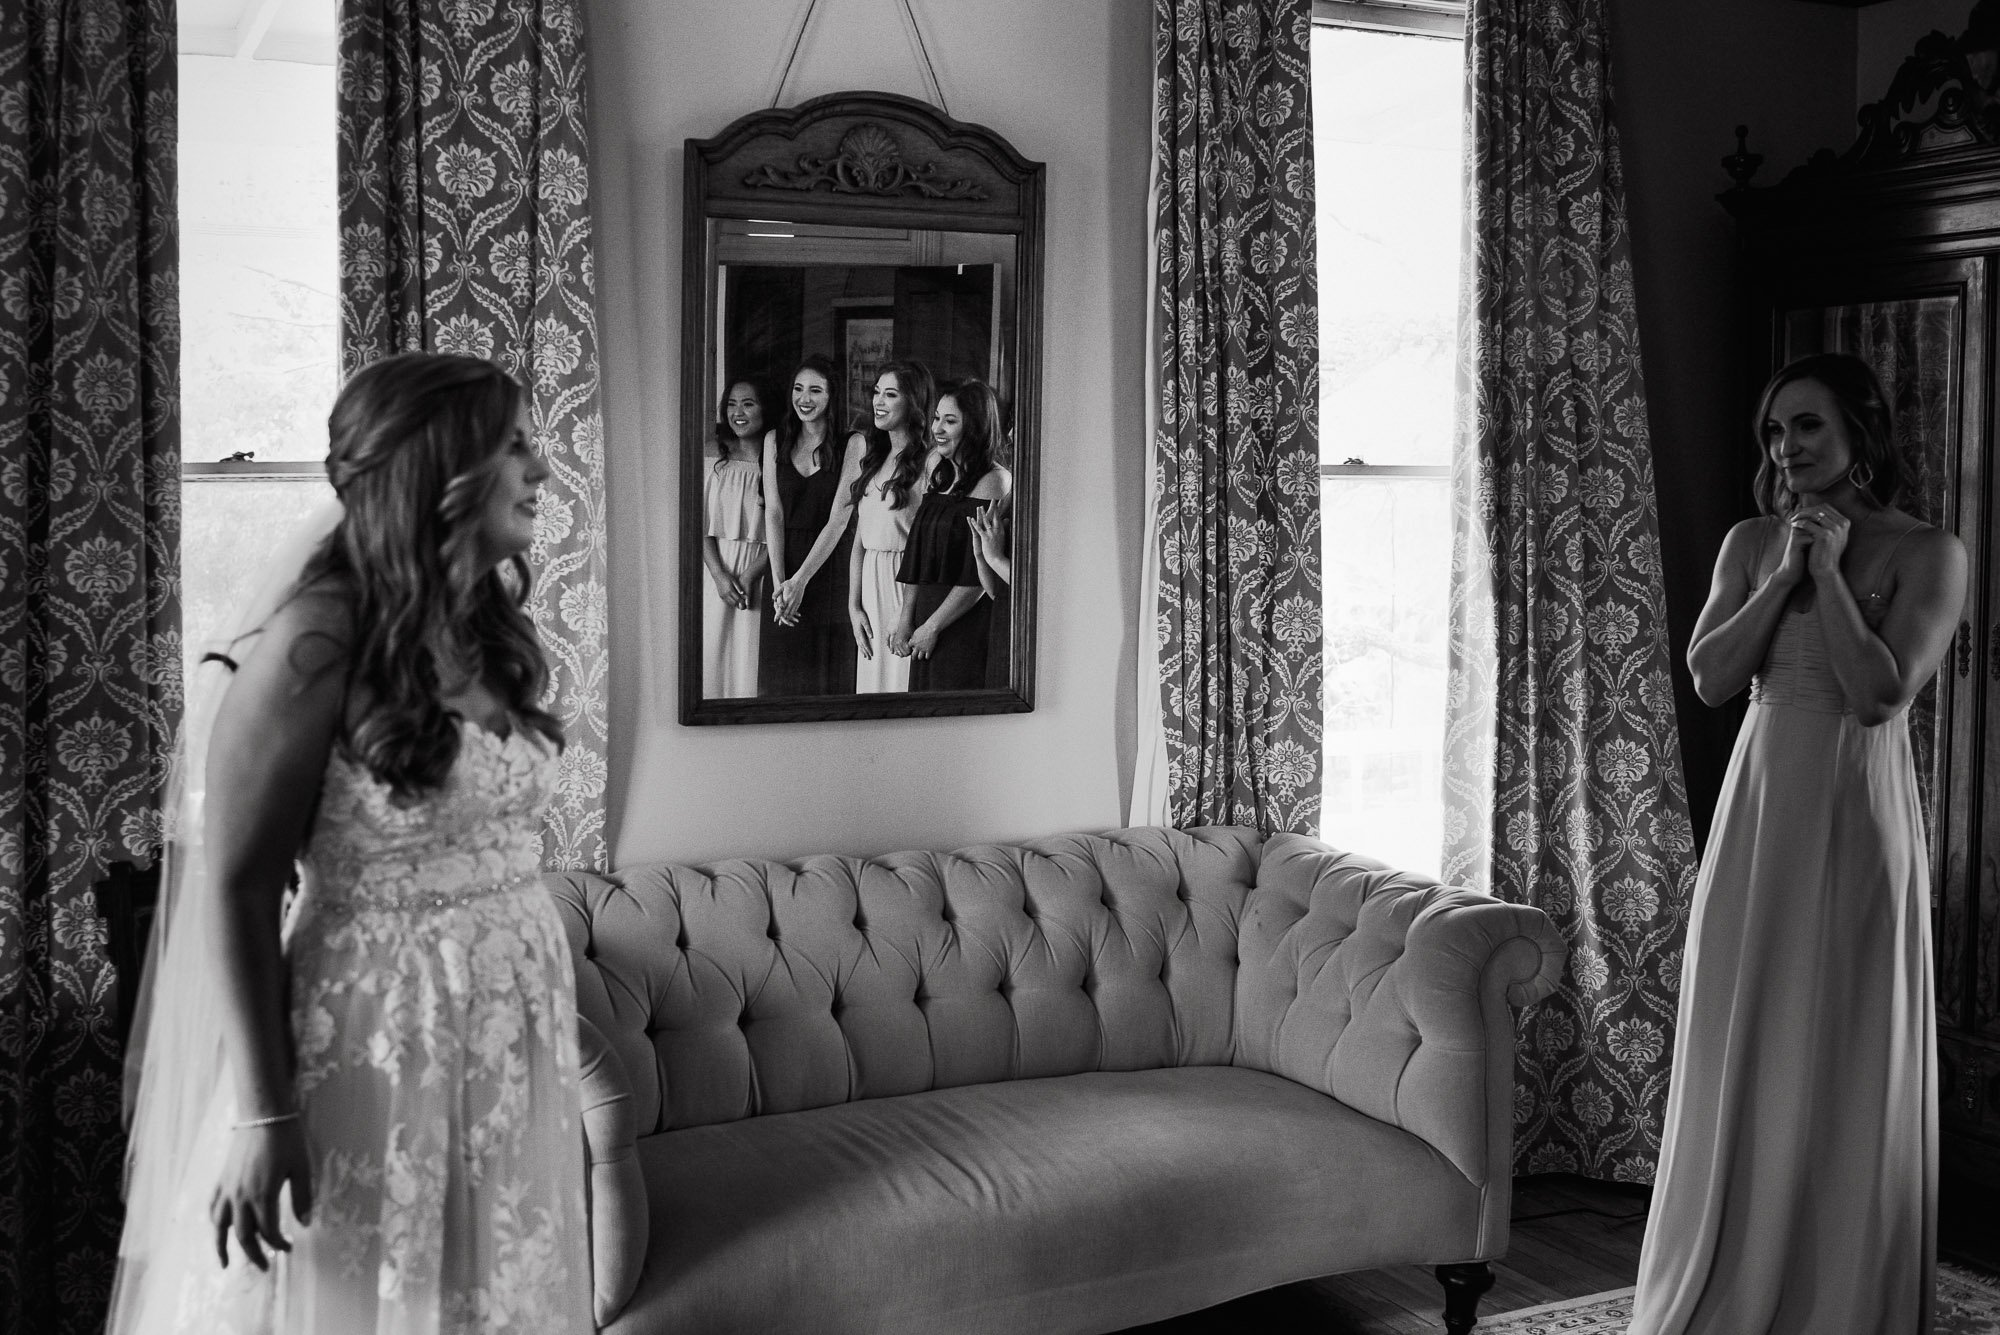 spring wedding at the barr mansion, bridesmaids first look photo examples, dress reveal with bridesmaids